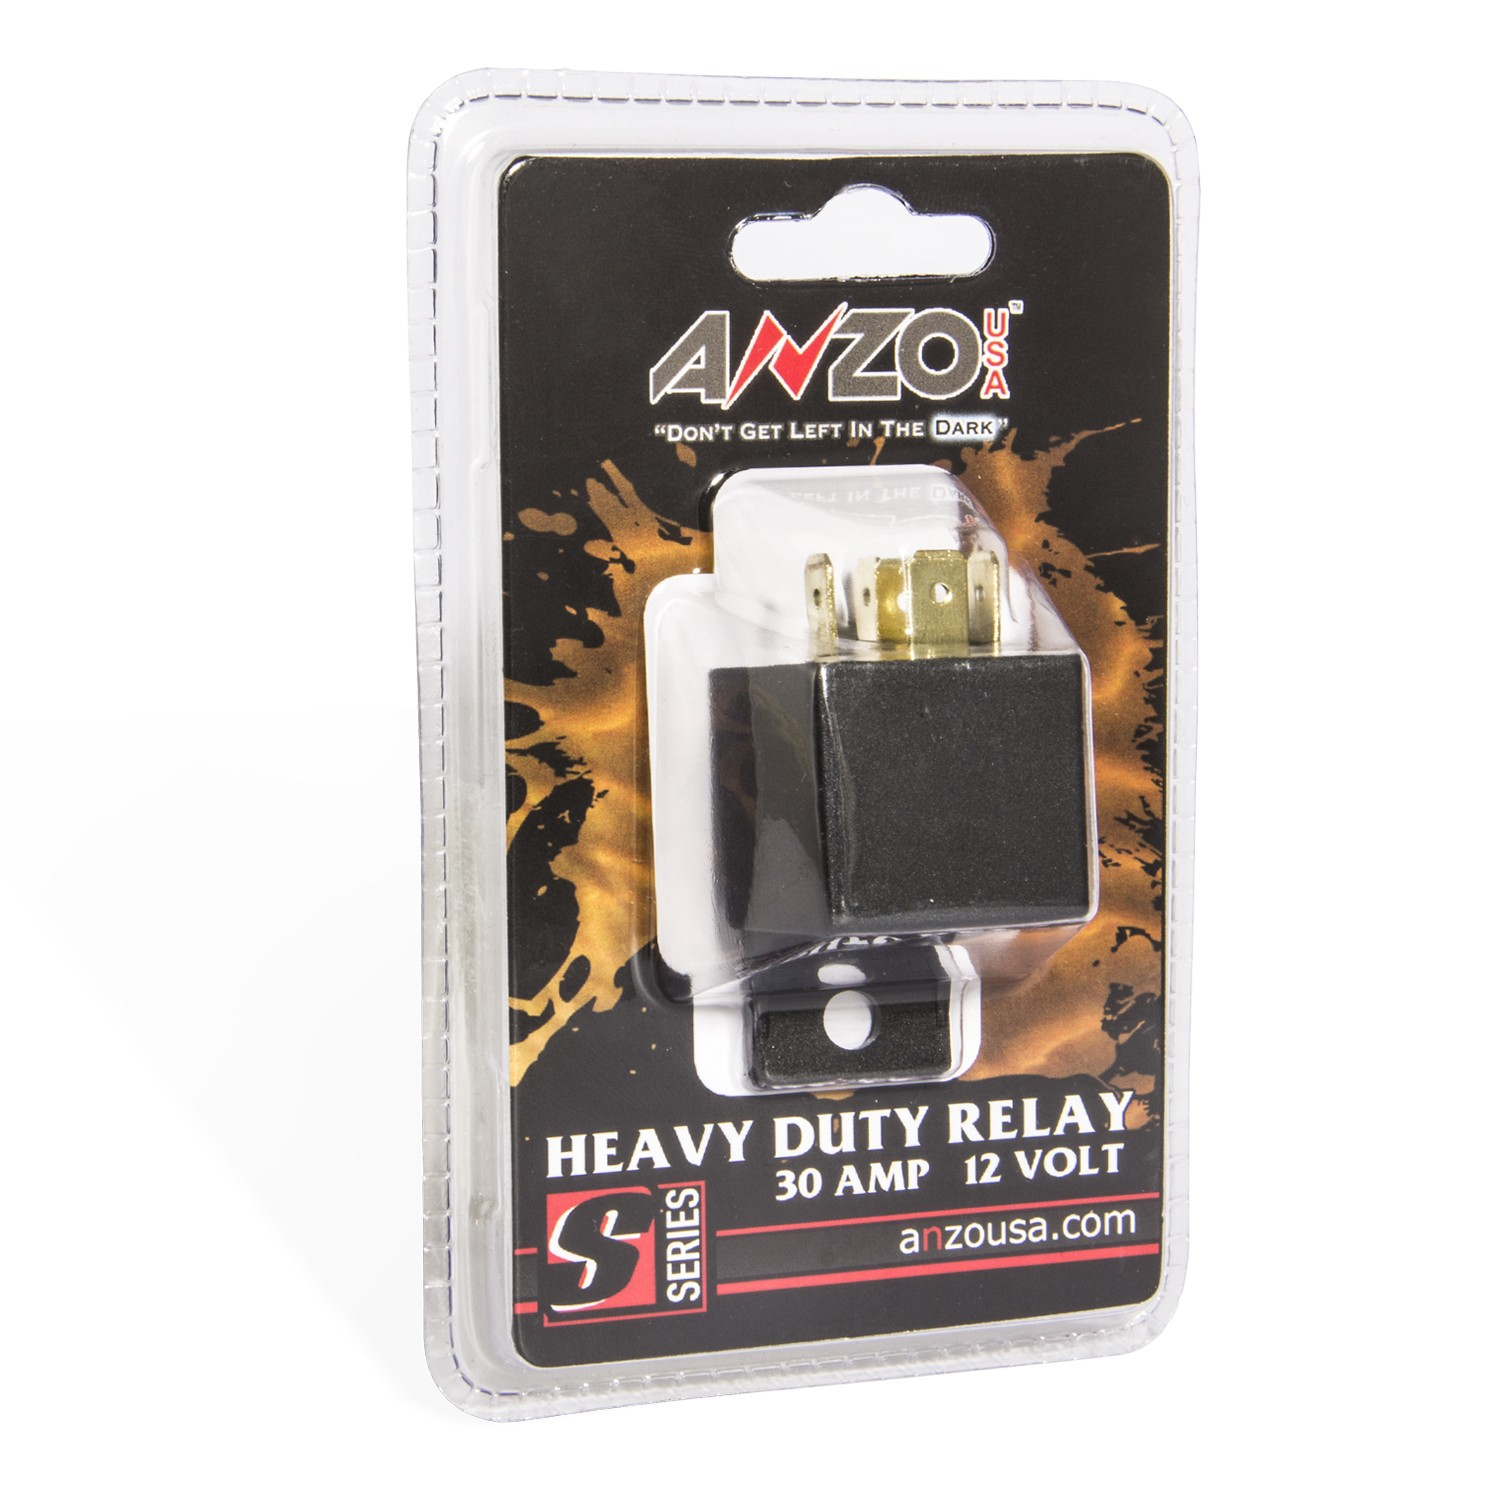 851063 Anzo Multi Purpose Relay 30 Amp